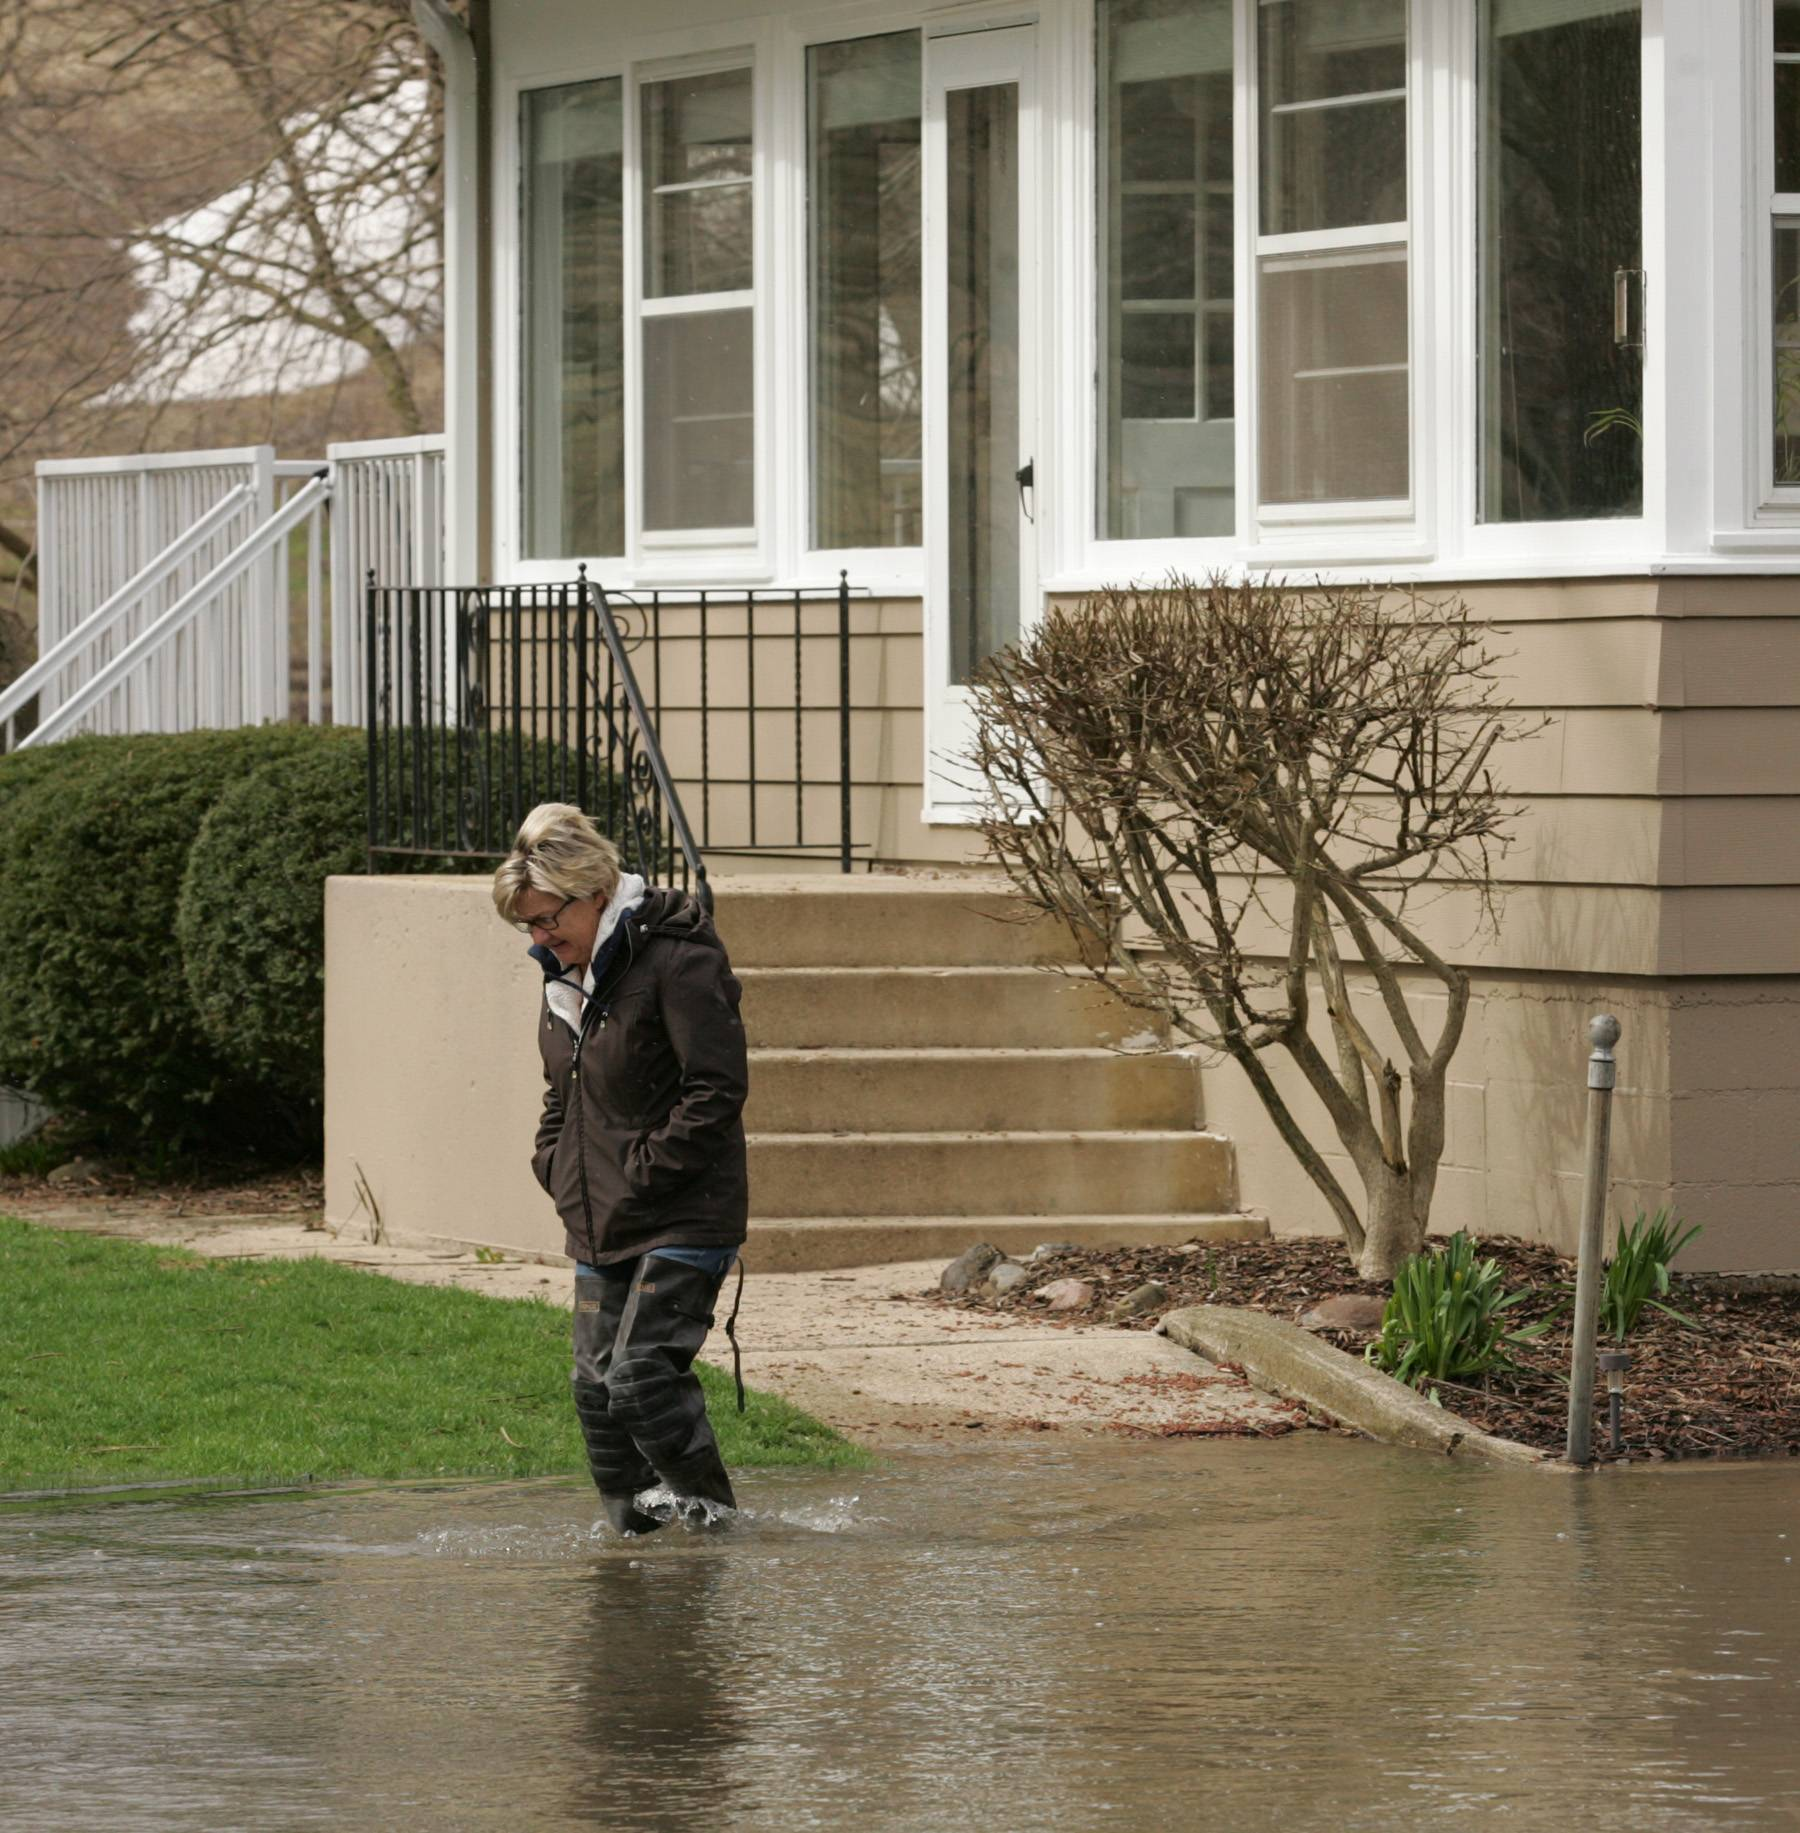 Nan Gagliano walks from her home along Winaki Trail in Algonquin Friday morning where floodwaters have already surrounded her home. Despite the rising water, Gagliano says there's only moderate seepage in her basement. She and her husband Nick were most concerned with protecting the foundation of the home from the river's strong current.